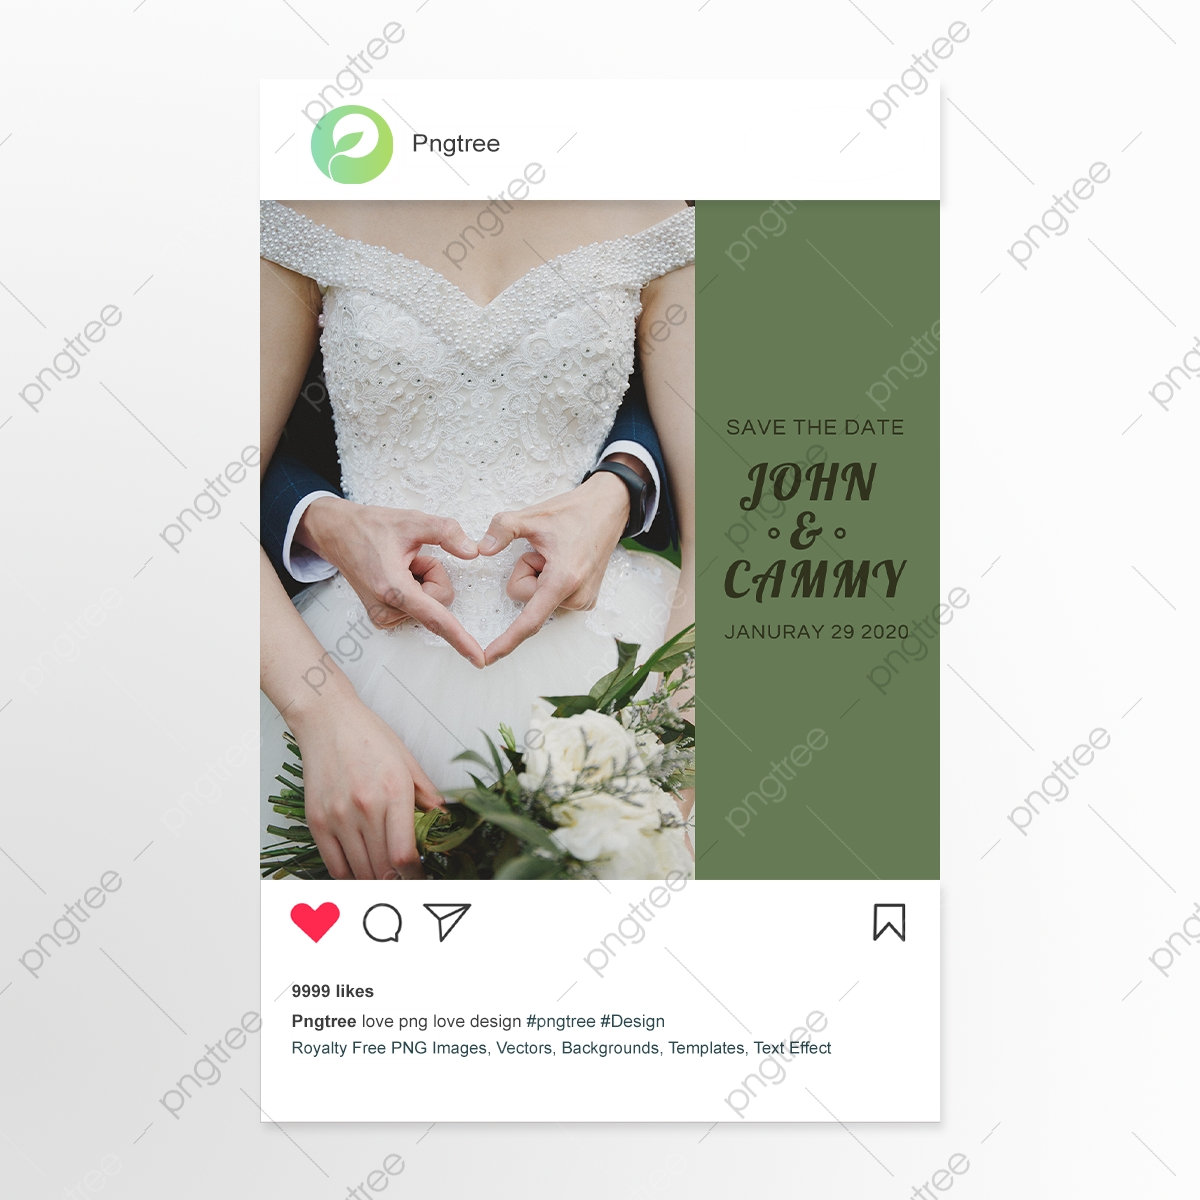 Wedding Photography Png Images Vector And Psd Files Free Download On Pngtree